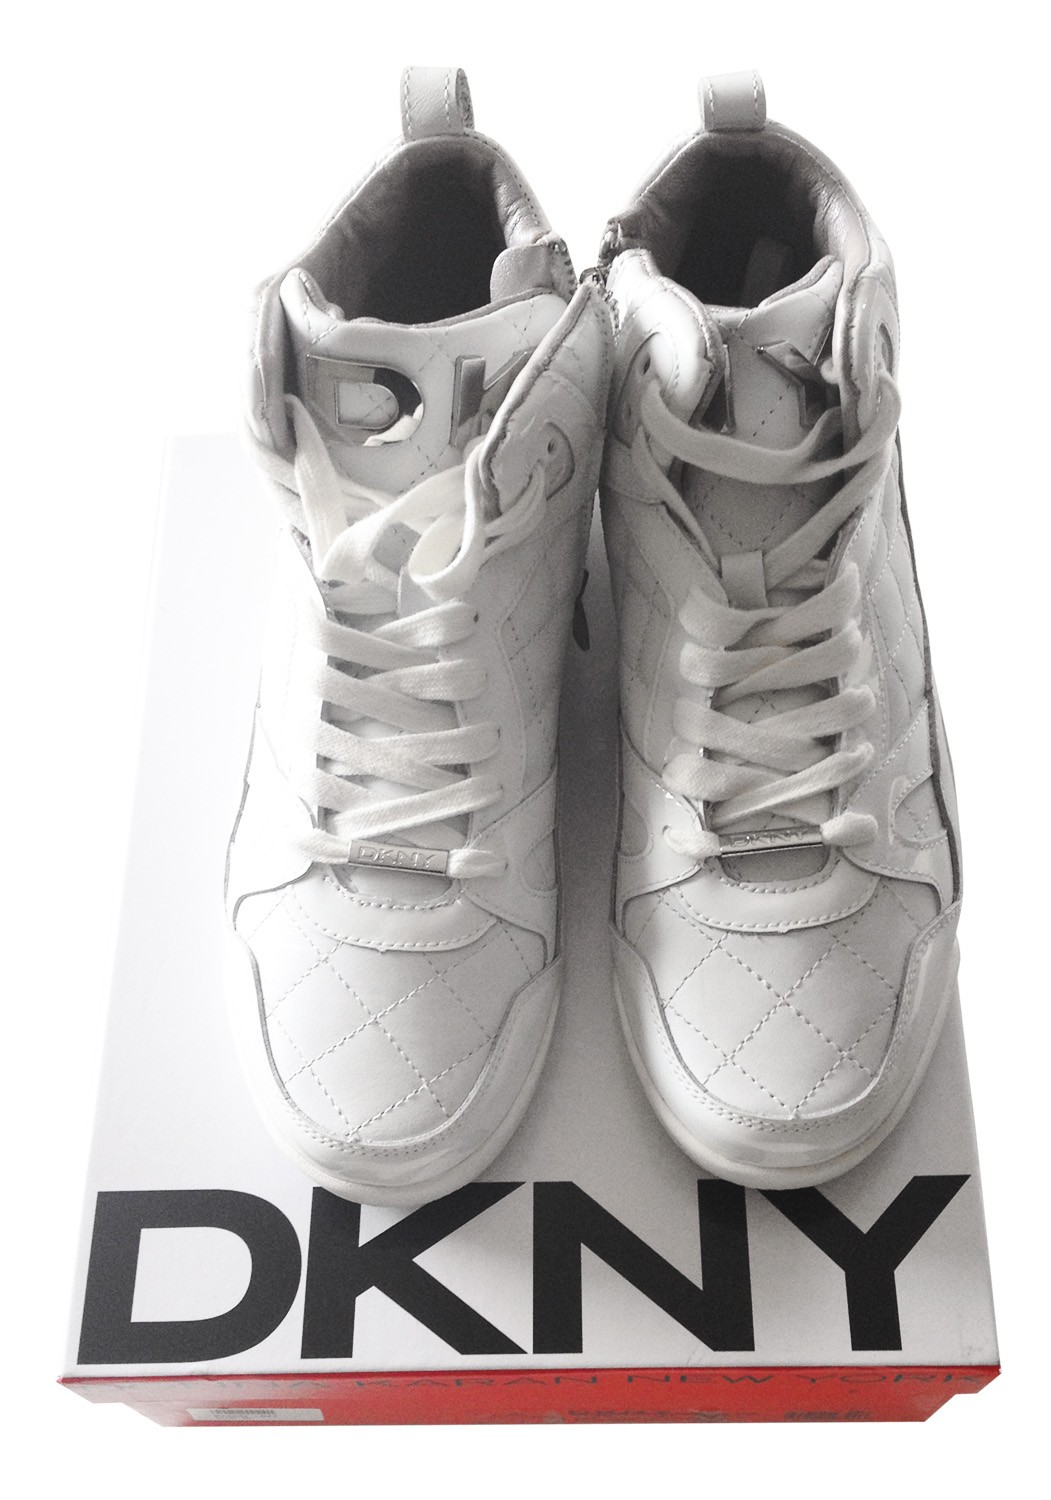 DKNY white leather sneakers